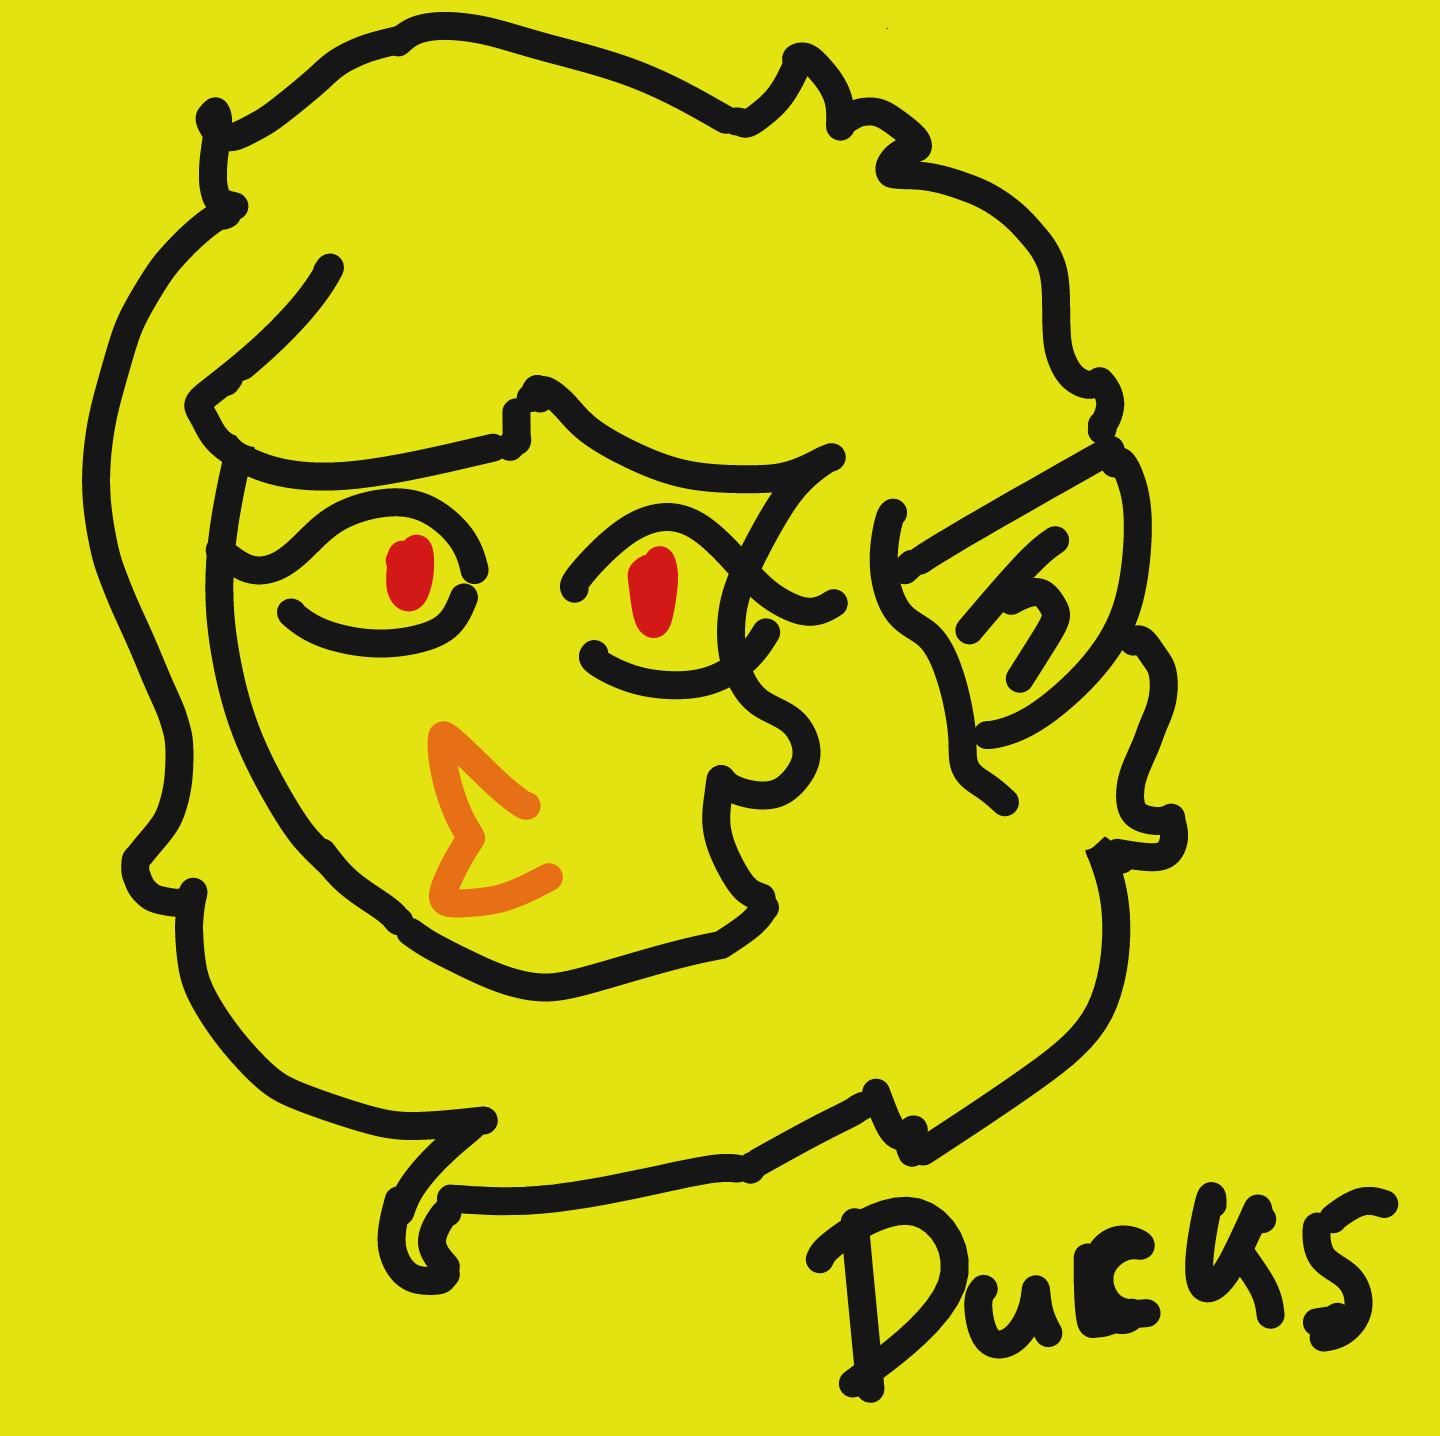 Profile picture for the comic artist, Ducksinmahbooks